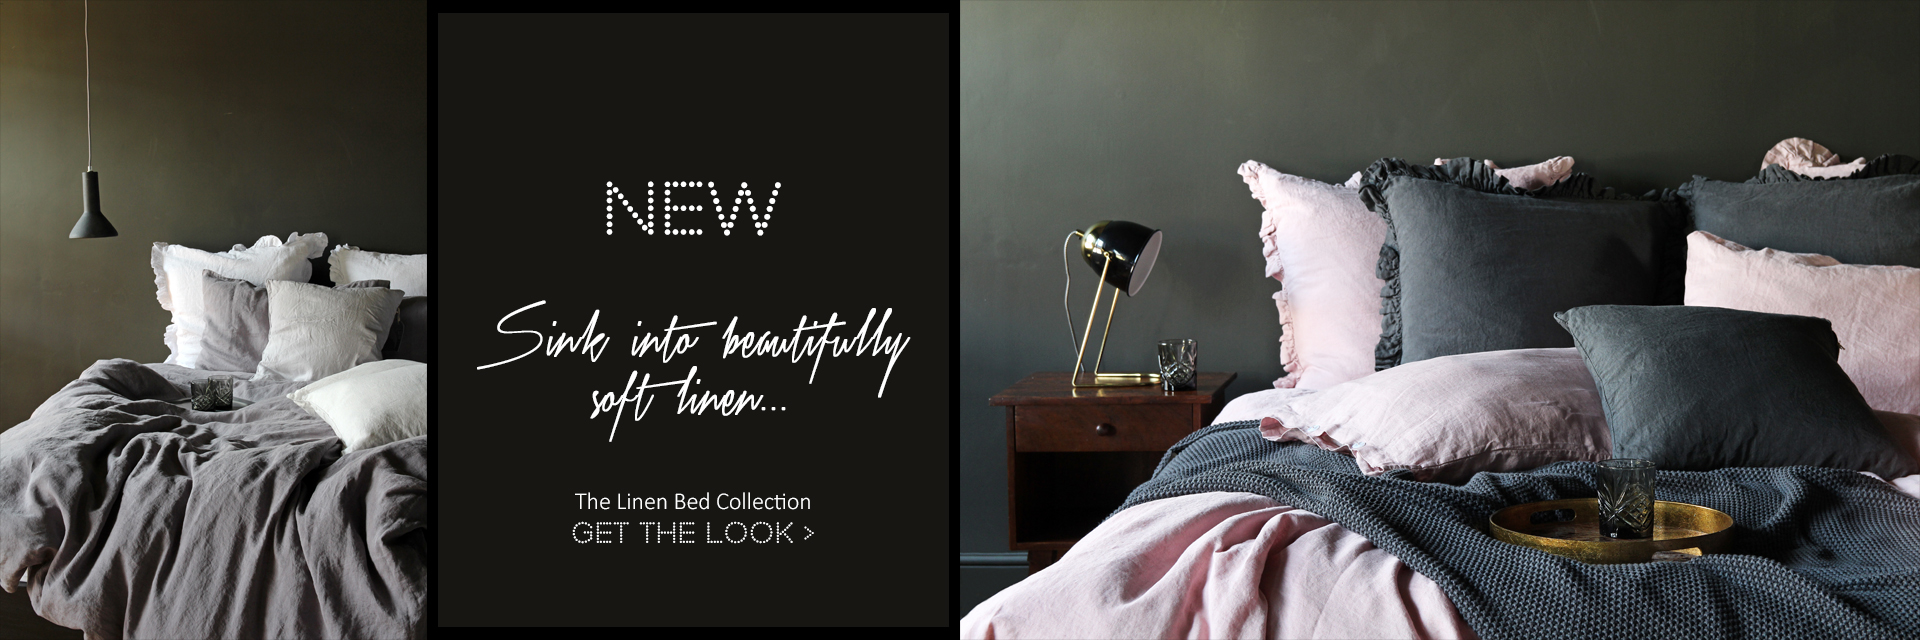 New Linen Bedding collection